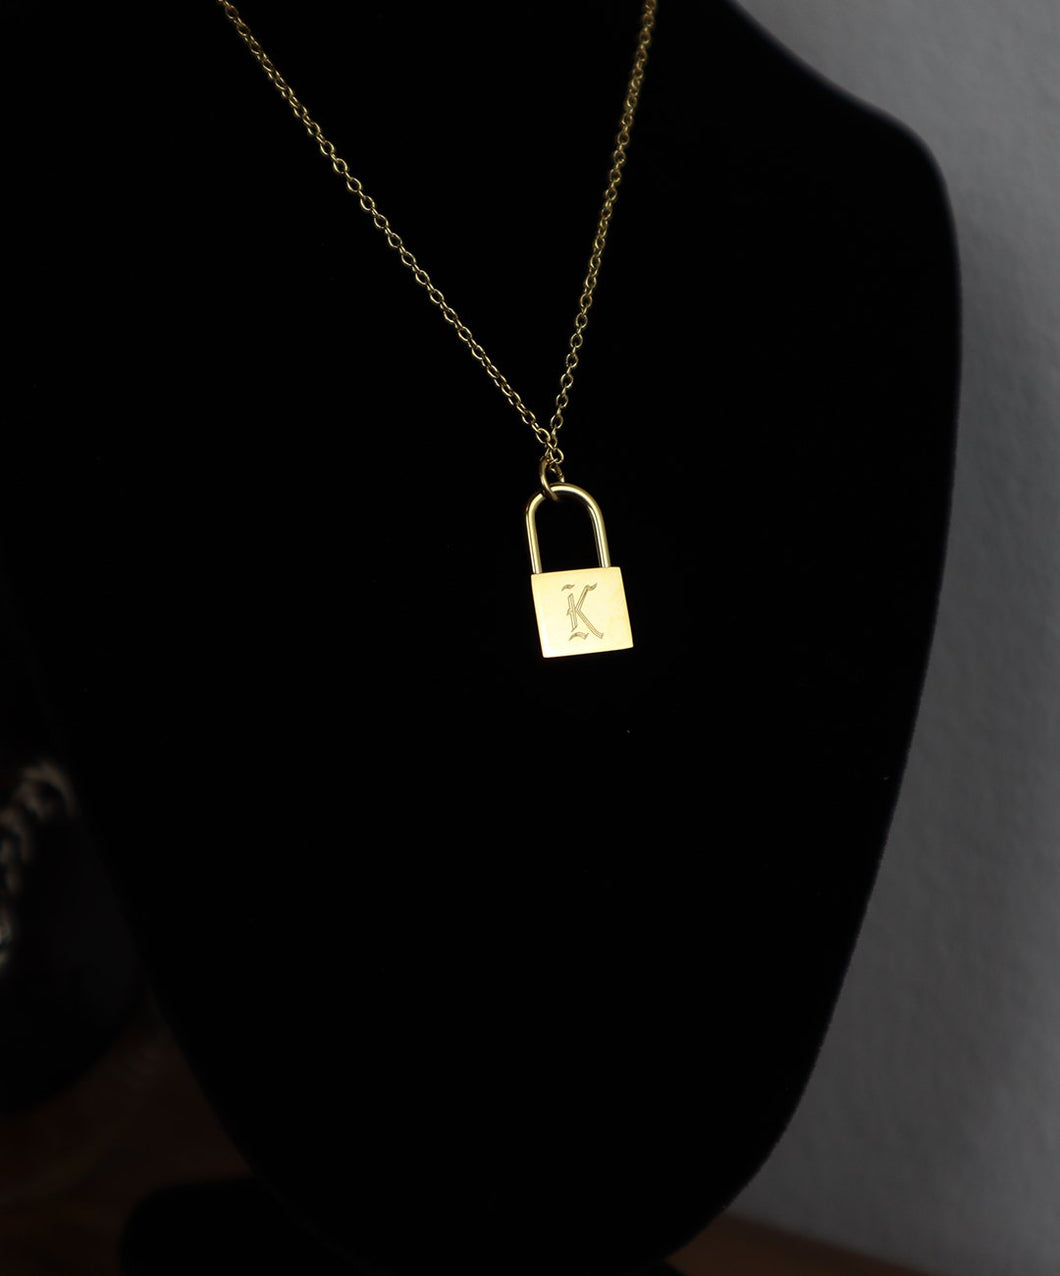 18k Gold Lock Necklace: K